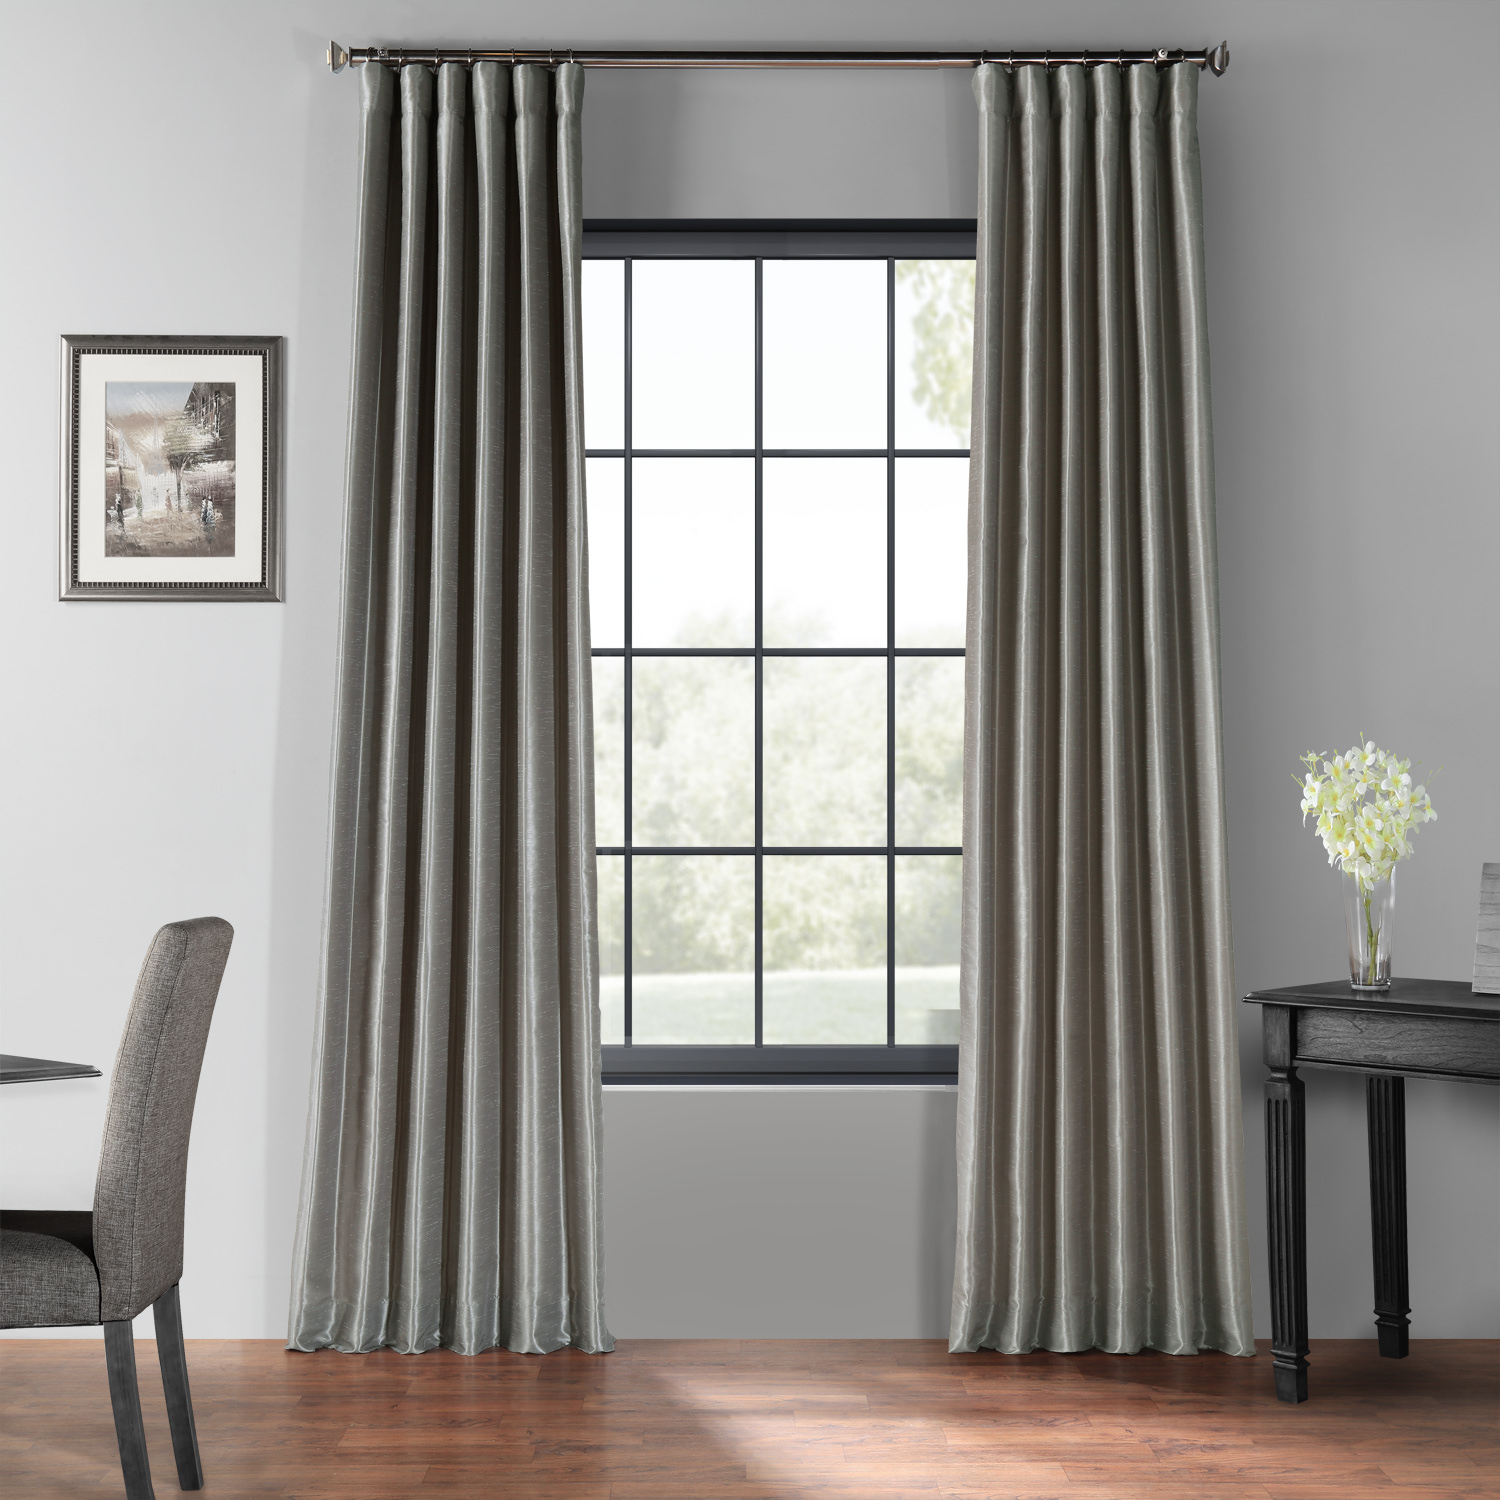 Silver Blackout Vintage Textured Faux Dupioni Curtain